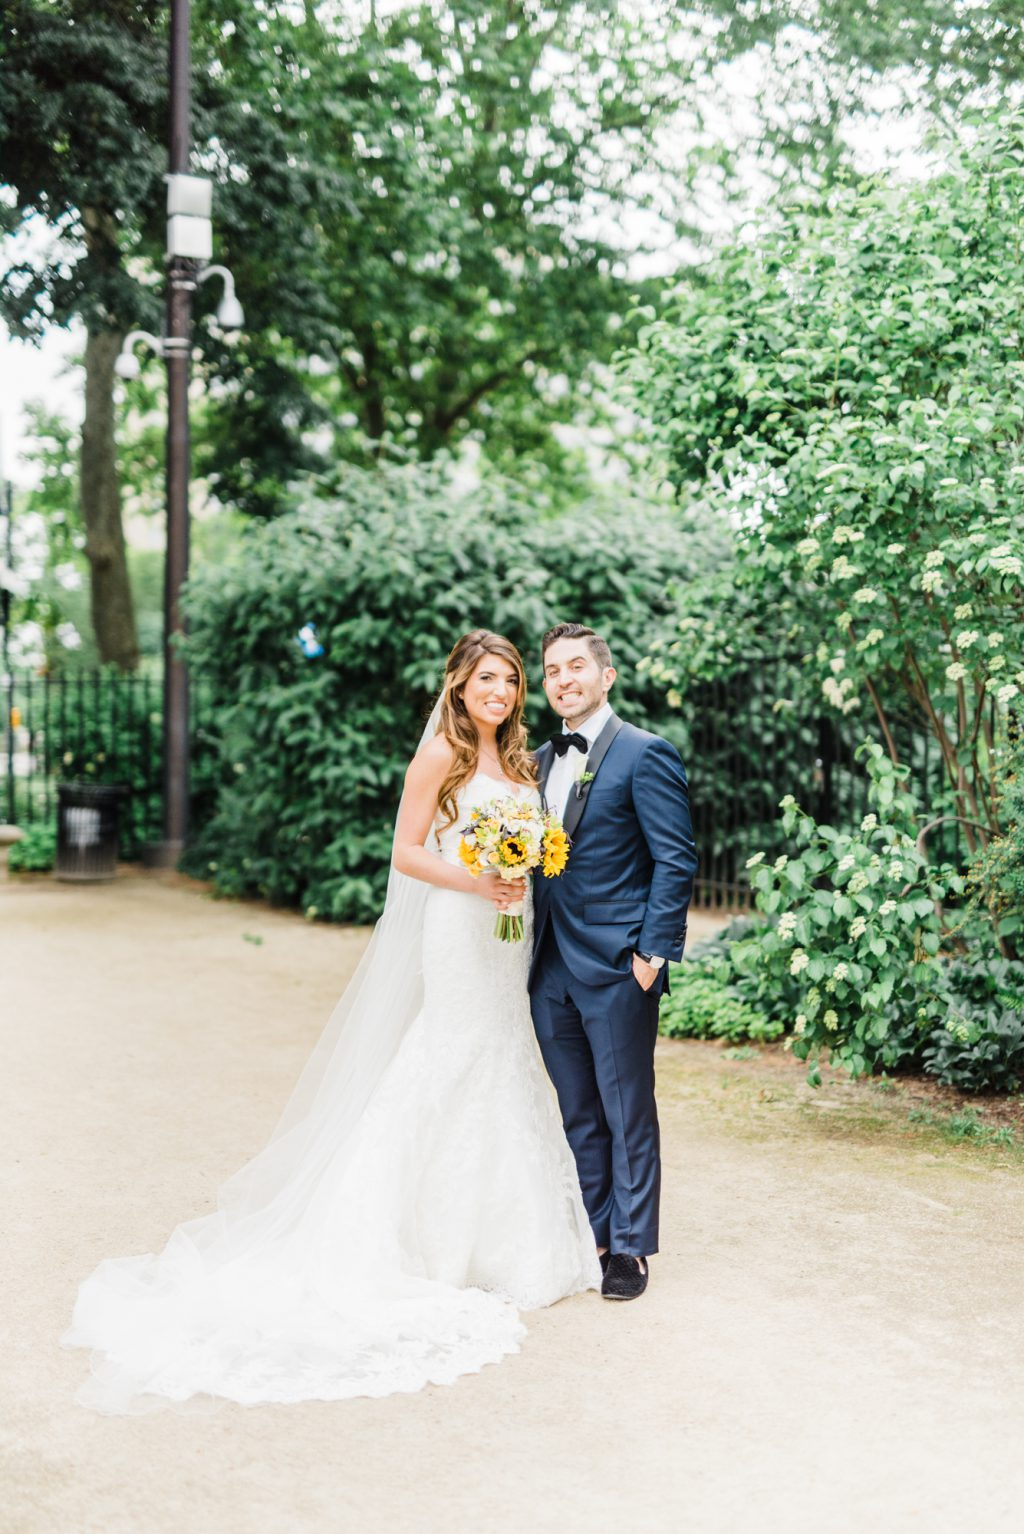 haleyrichterphoto-front-and-palmer-spring-wedding-rodin-museum-loews-hotel-philadelphia-080